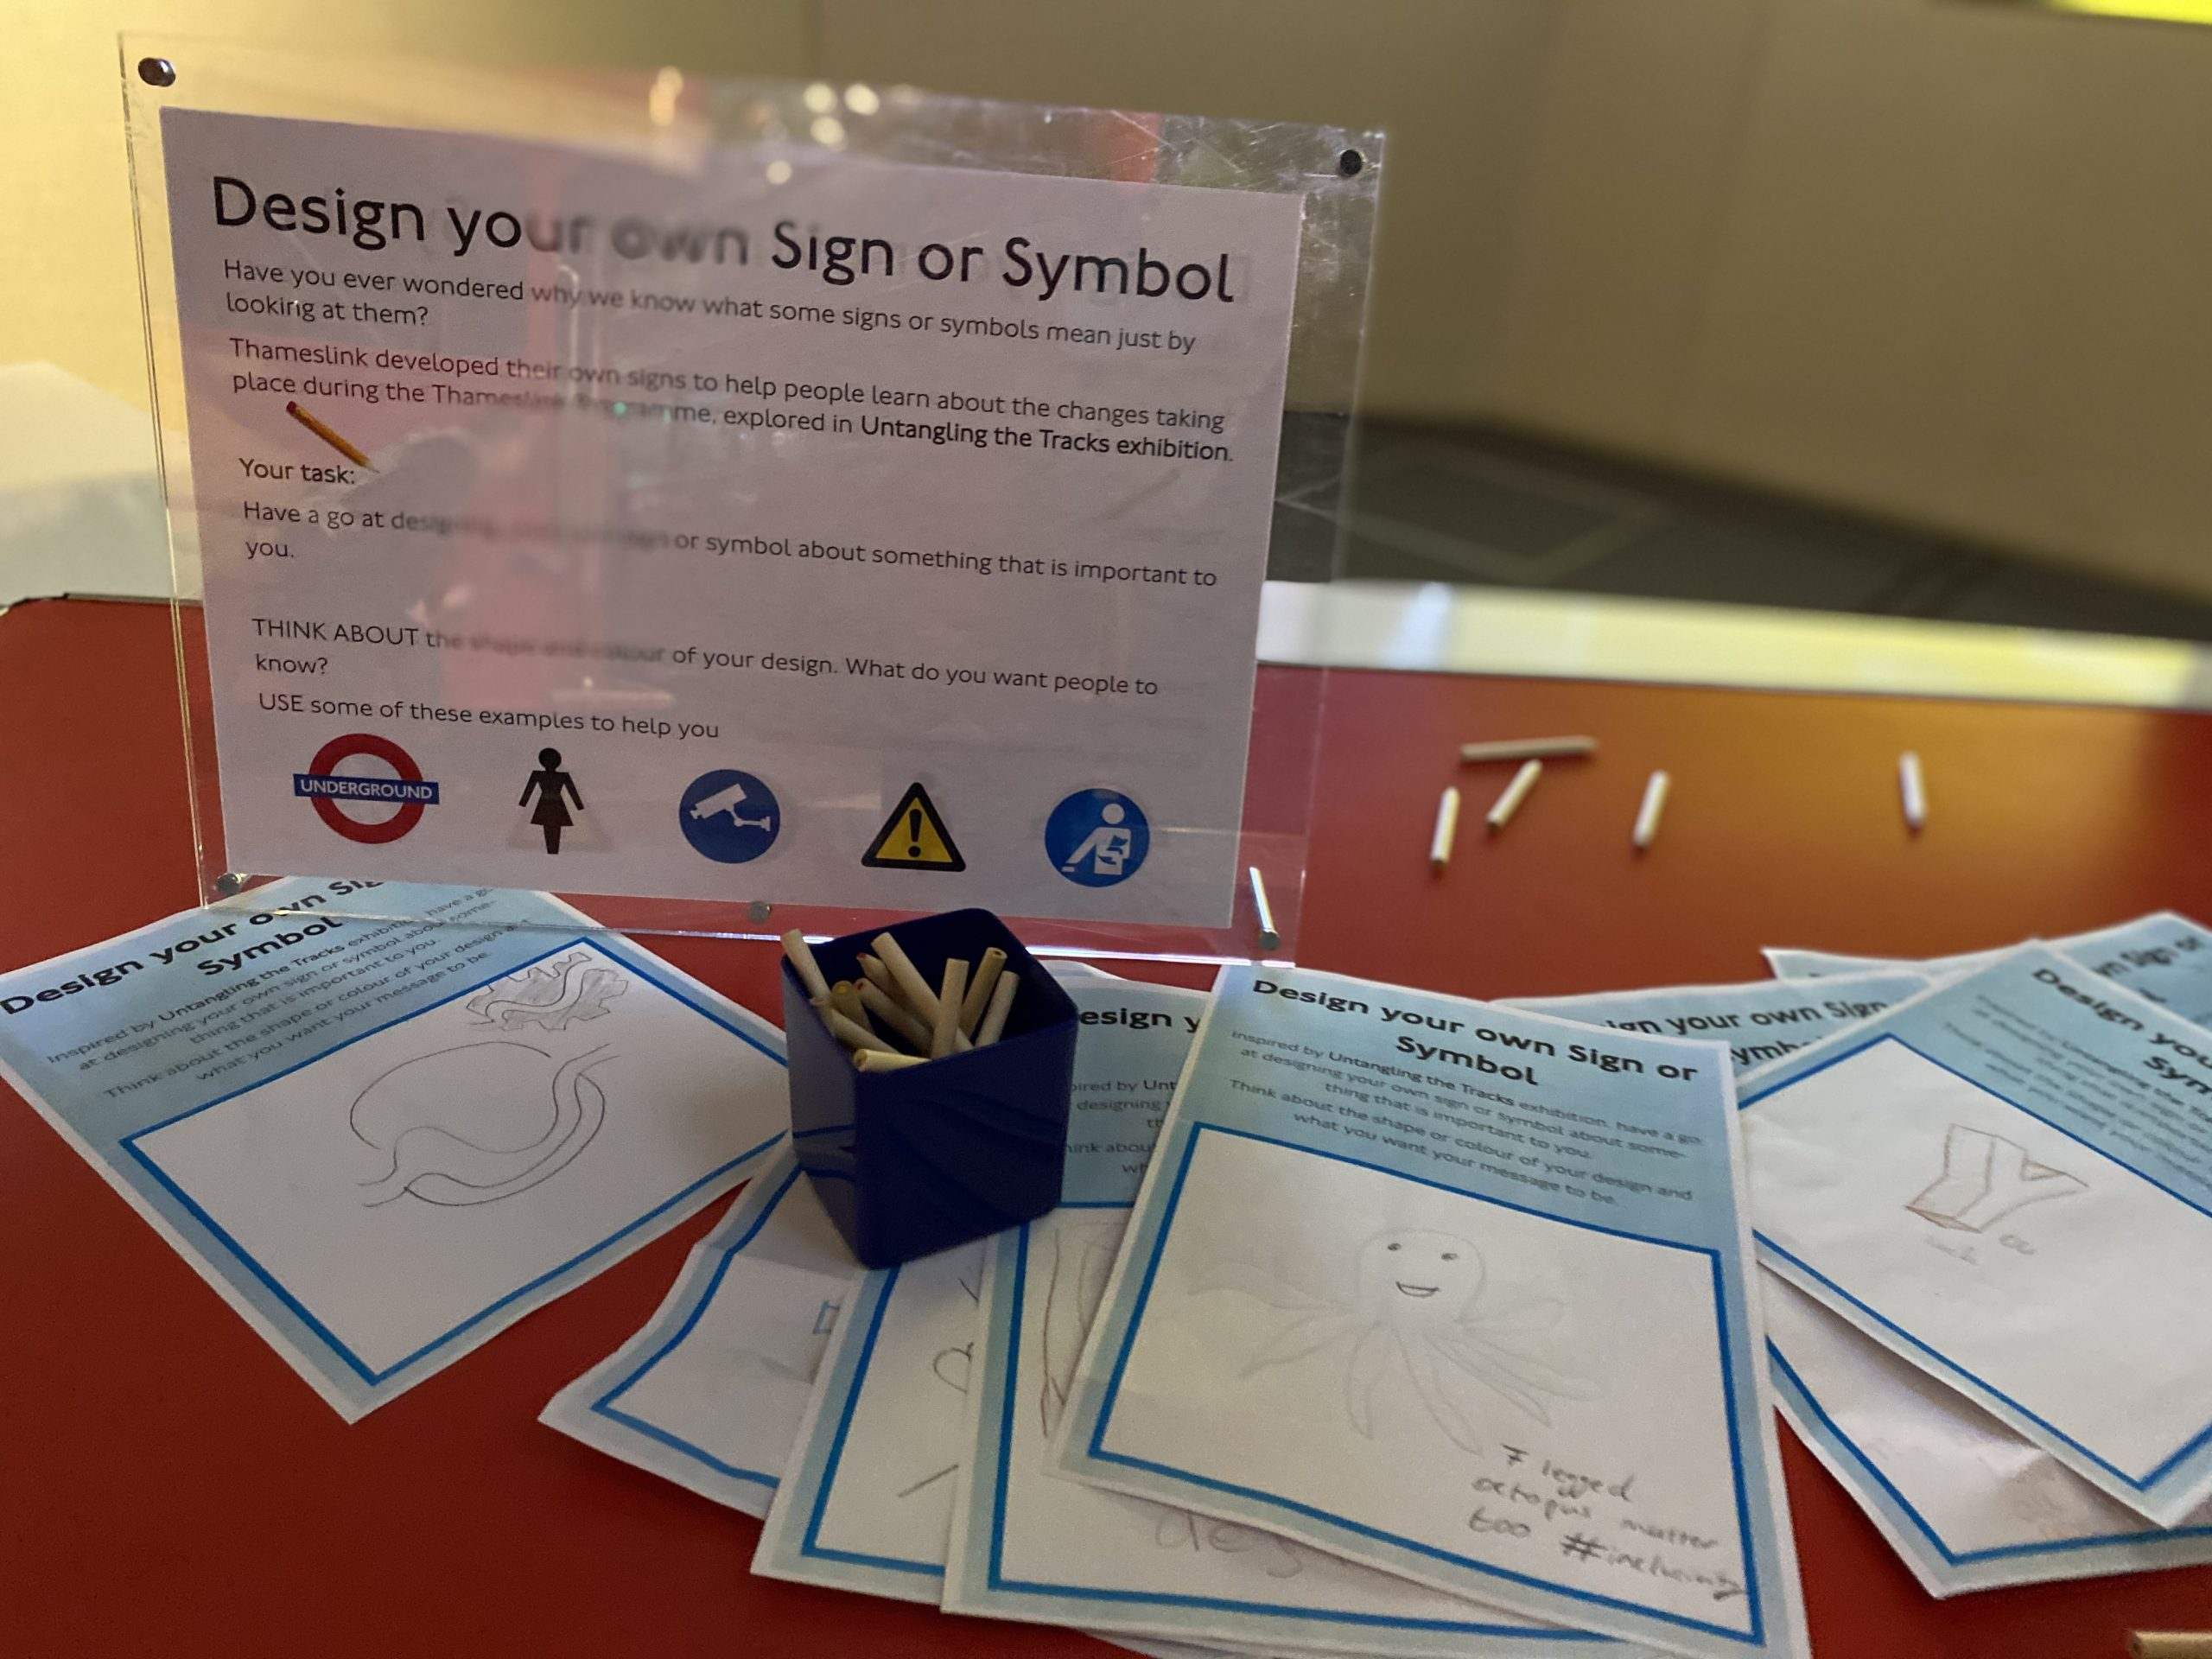 Colouring pencils and paper for designing transport signs